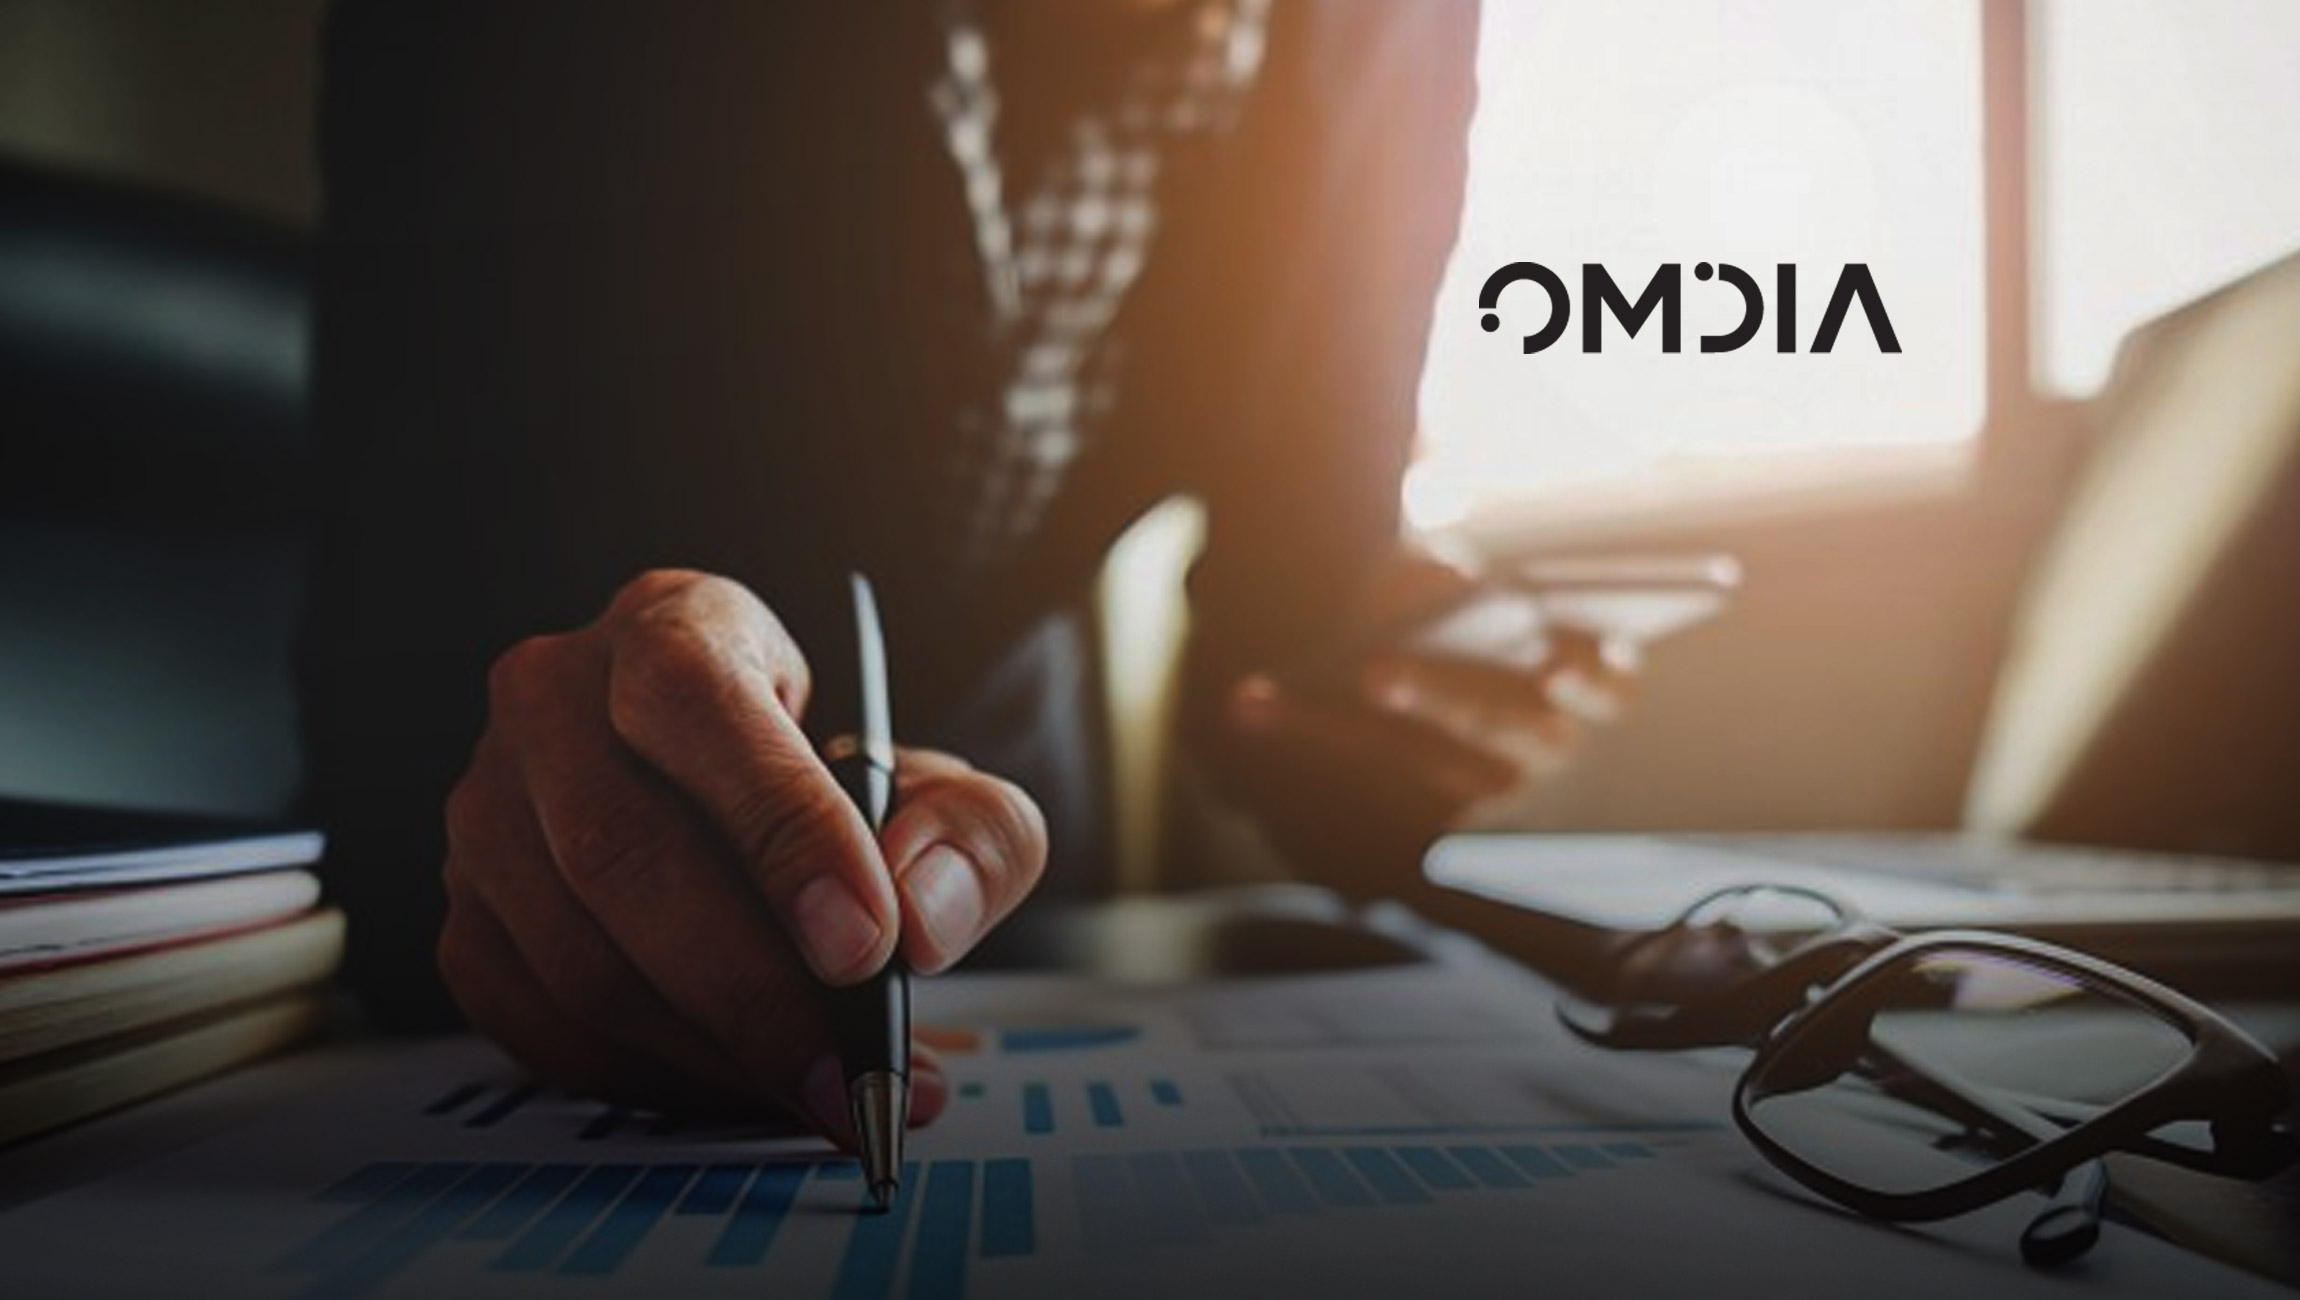 Artificial Intelligence Software Is Being Deployed via a Wide Range of Business Models With Annual Revenue for Hybrid Solutions Reaching $45.5 Billion in 2025, According to Omdia